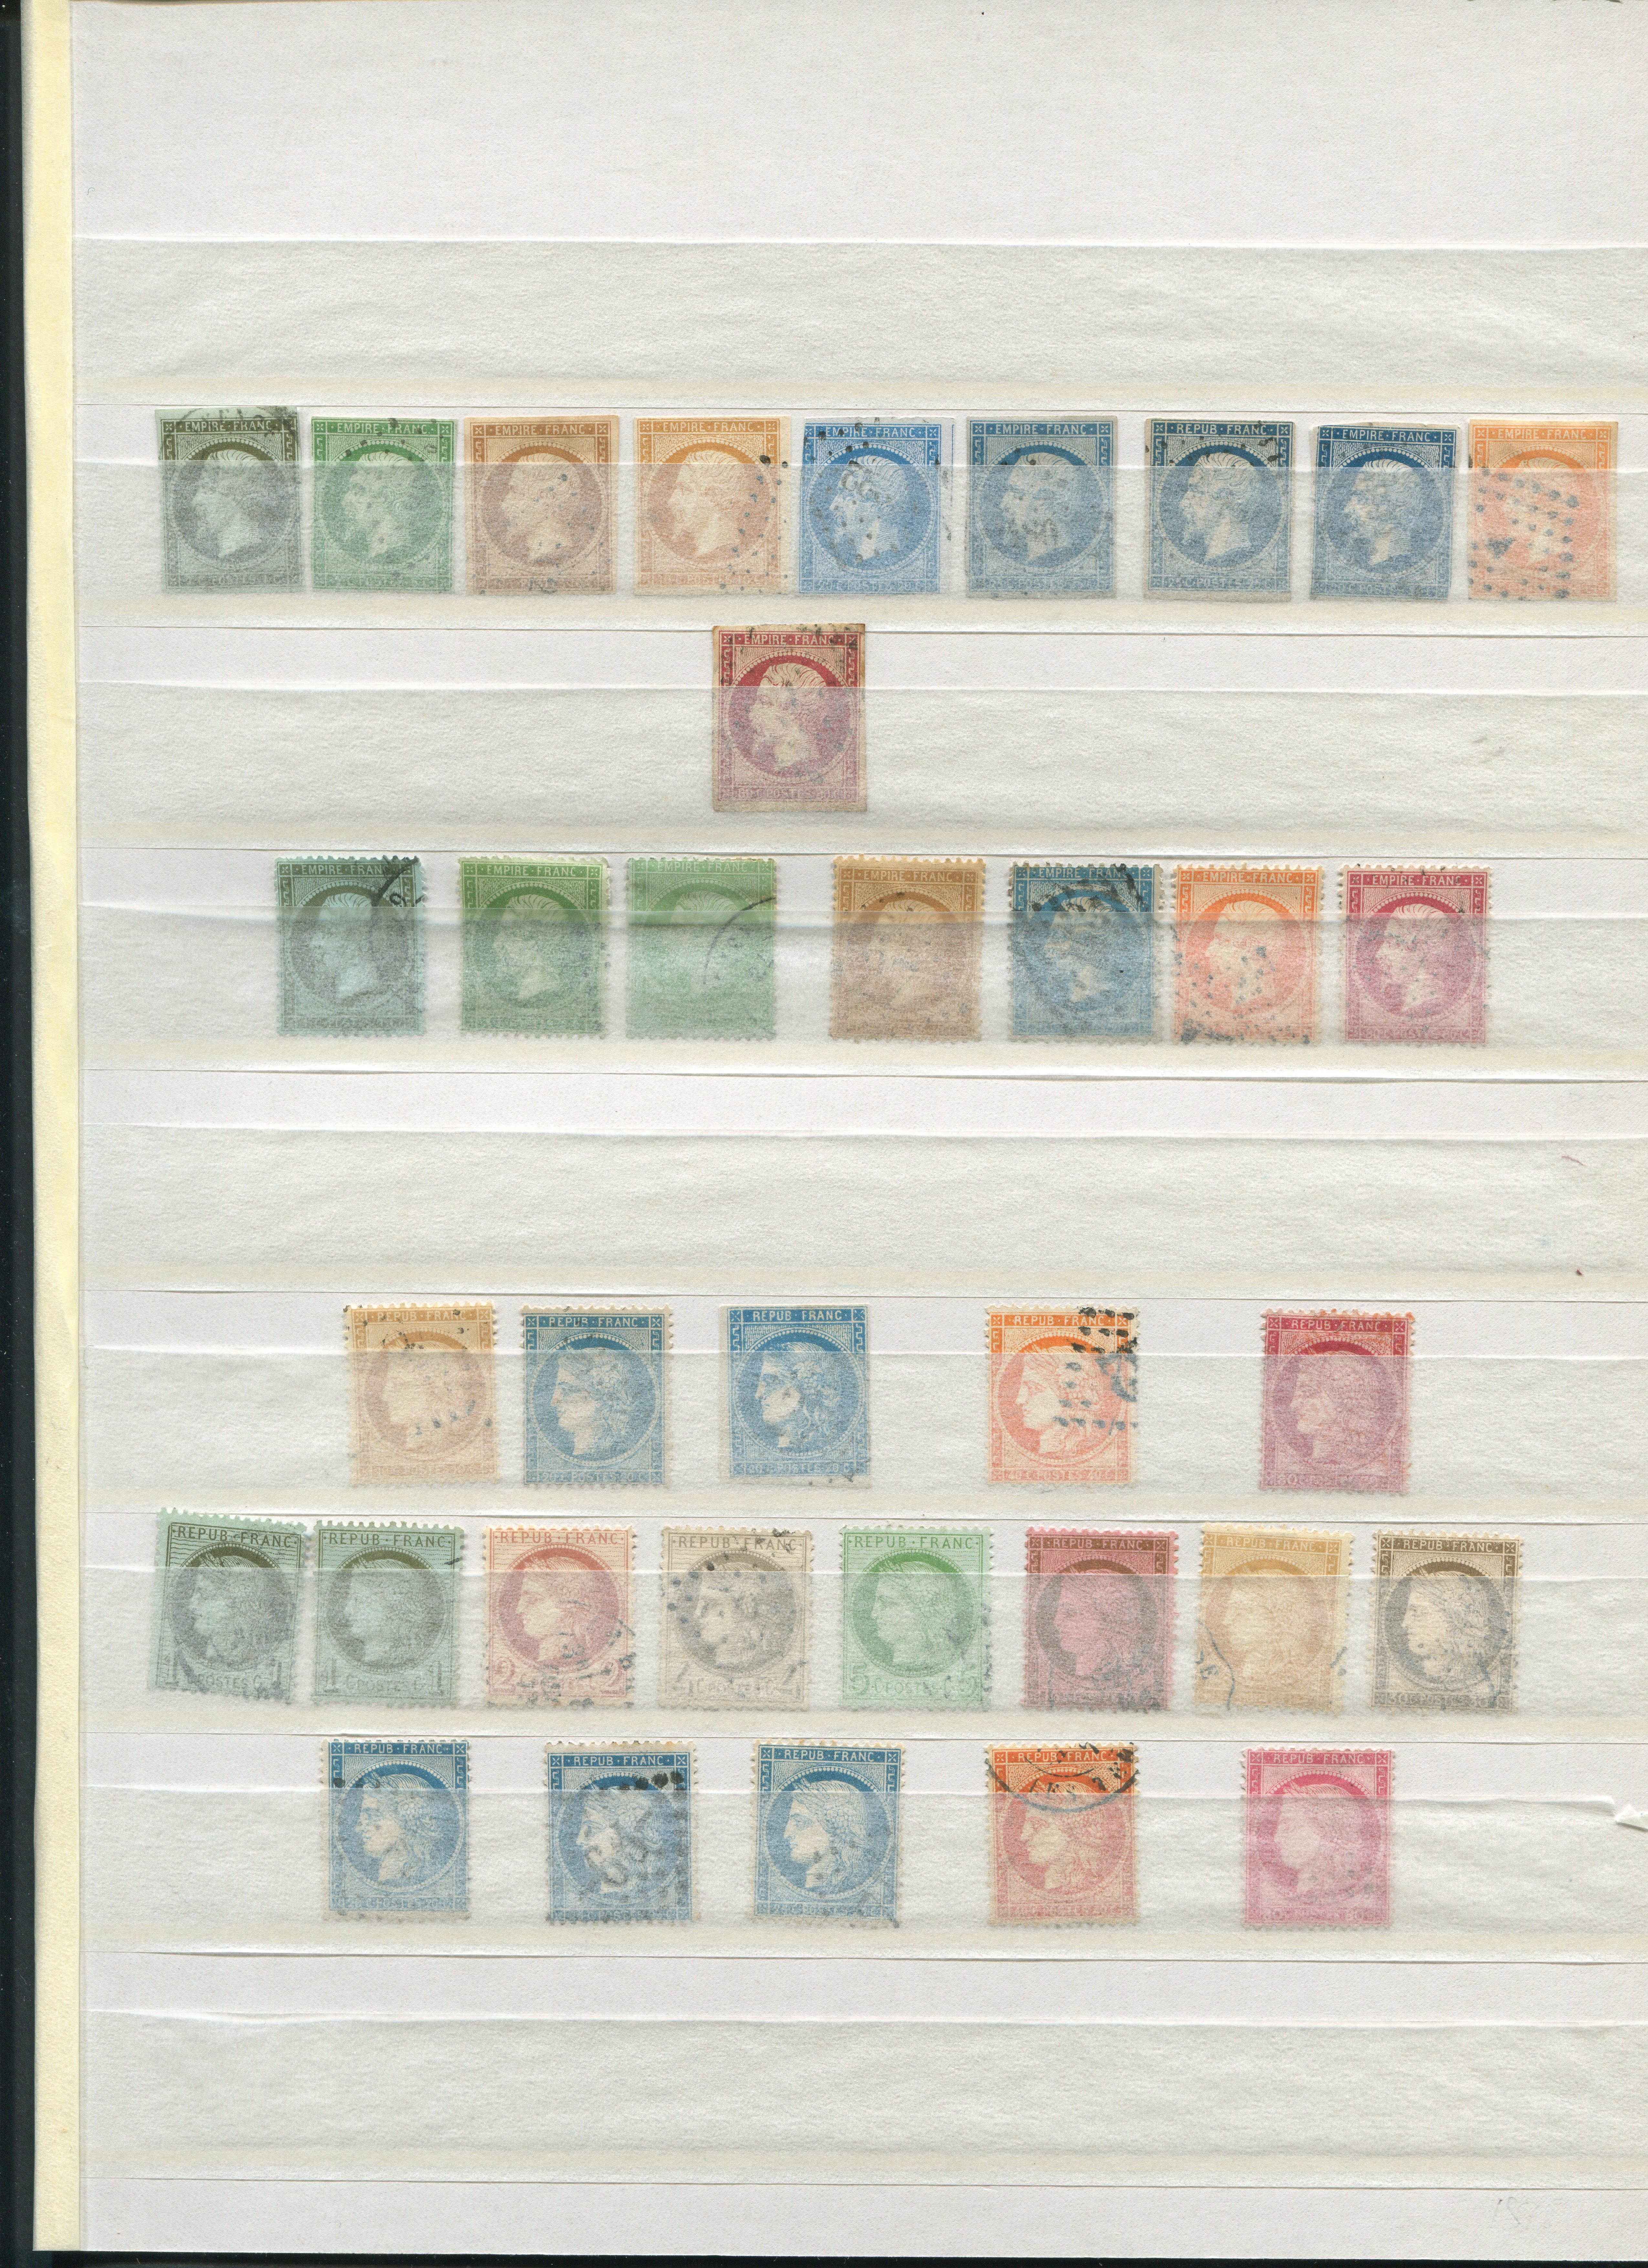 France 1853-1870 Stamp Collection